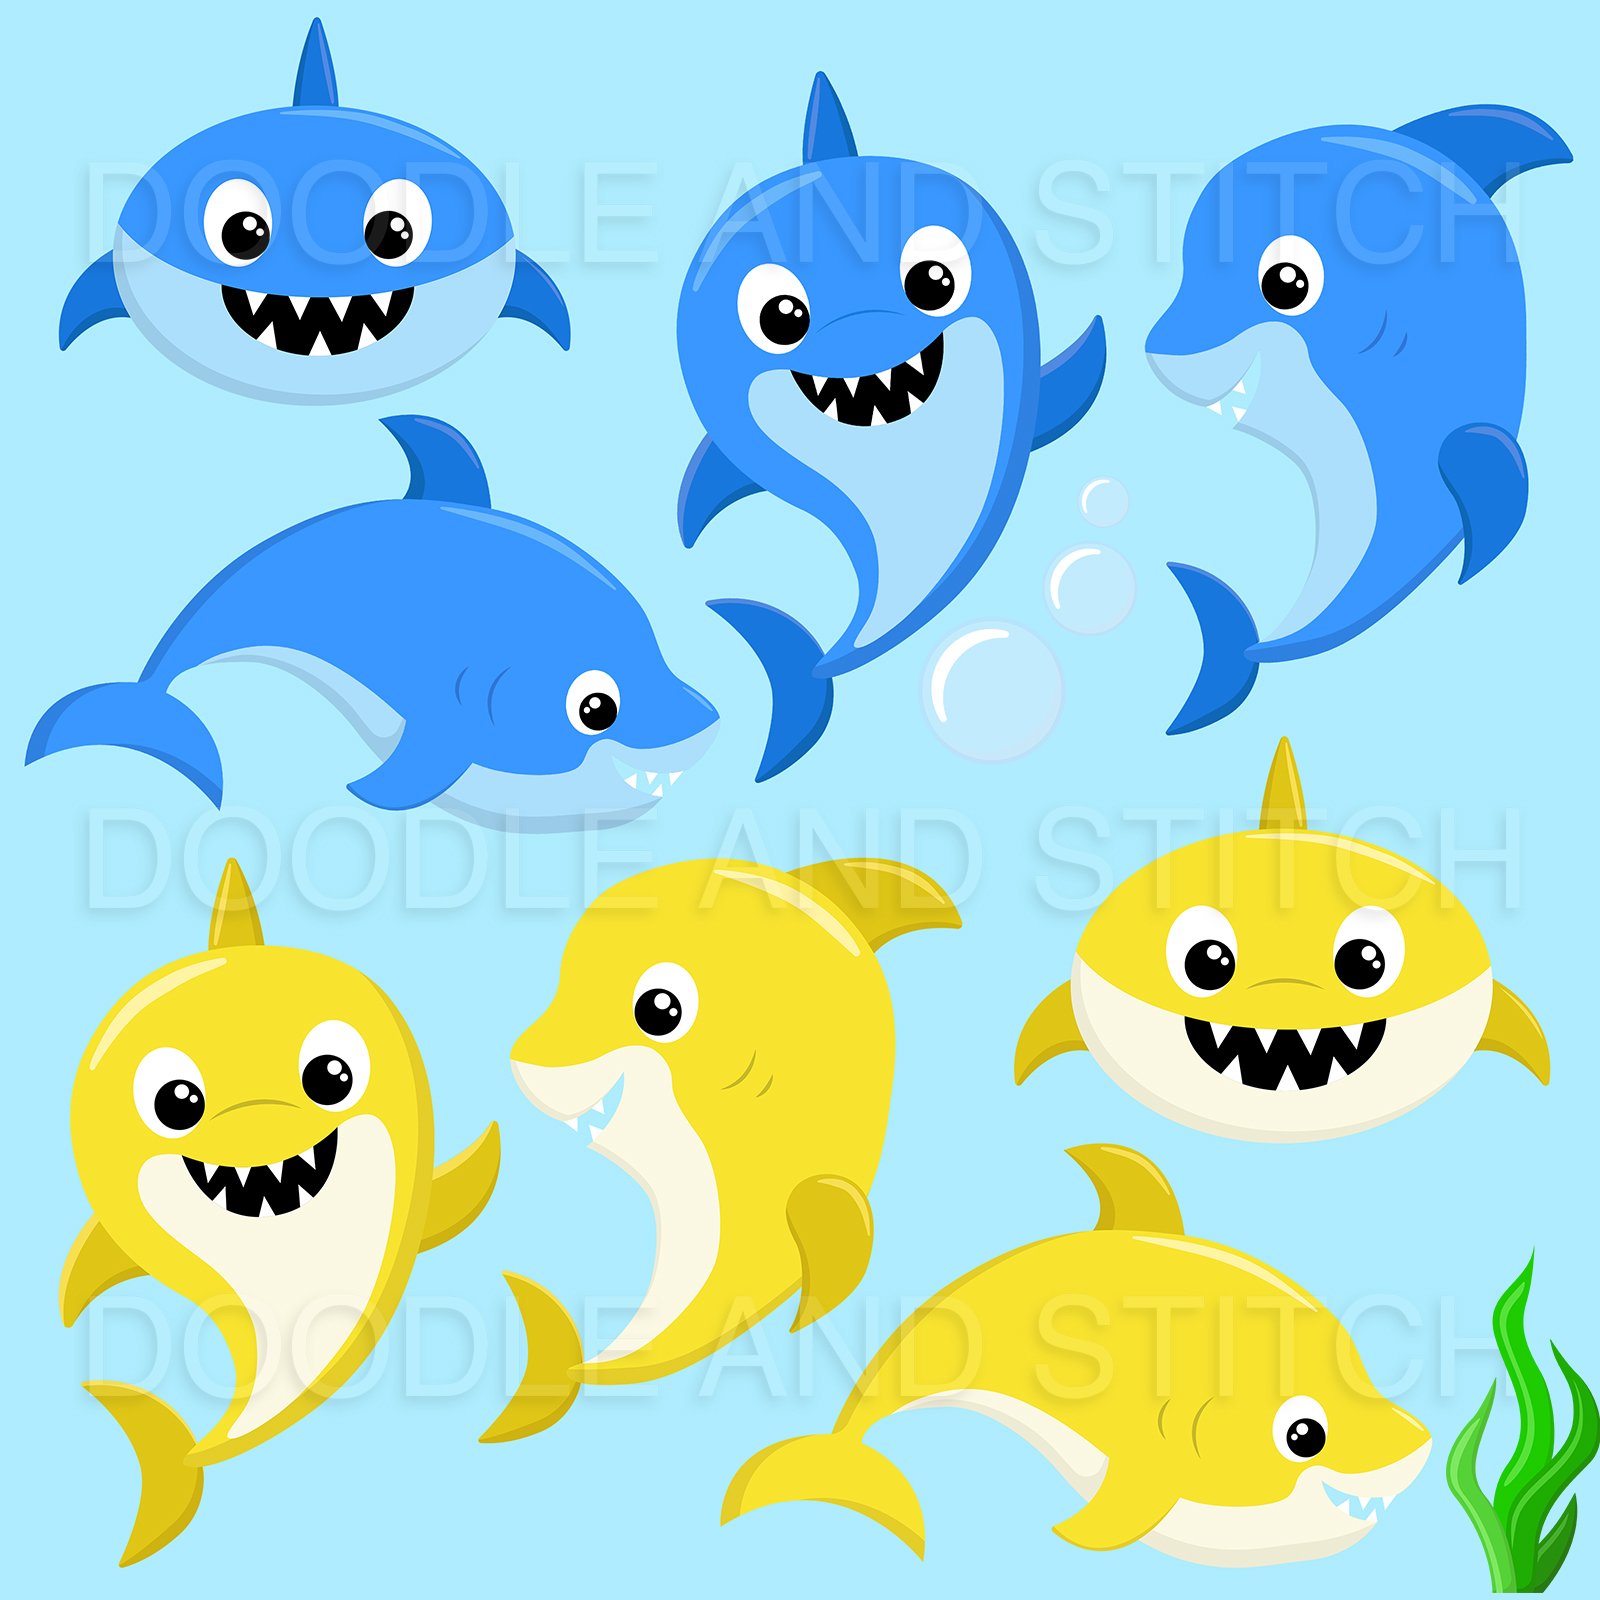 Shark Family Clipart Designs example image 2